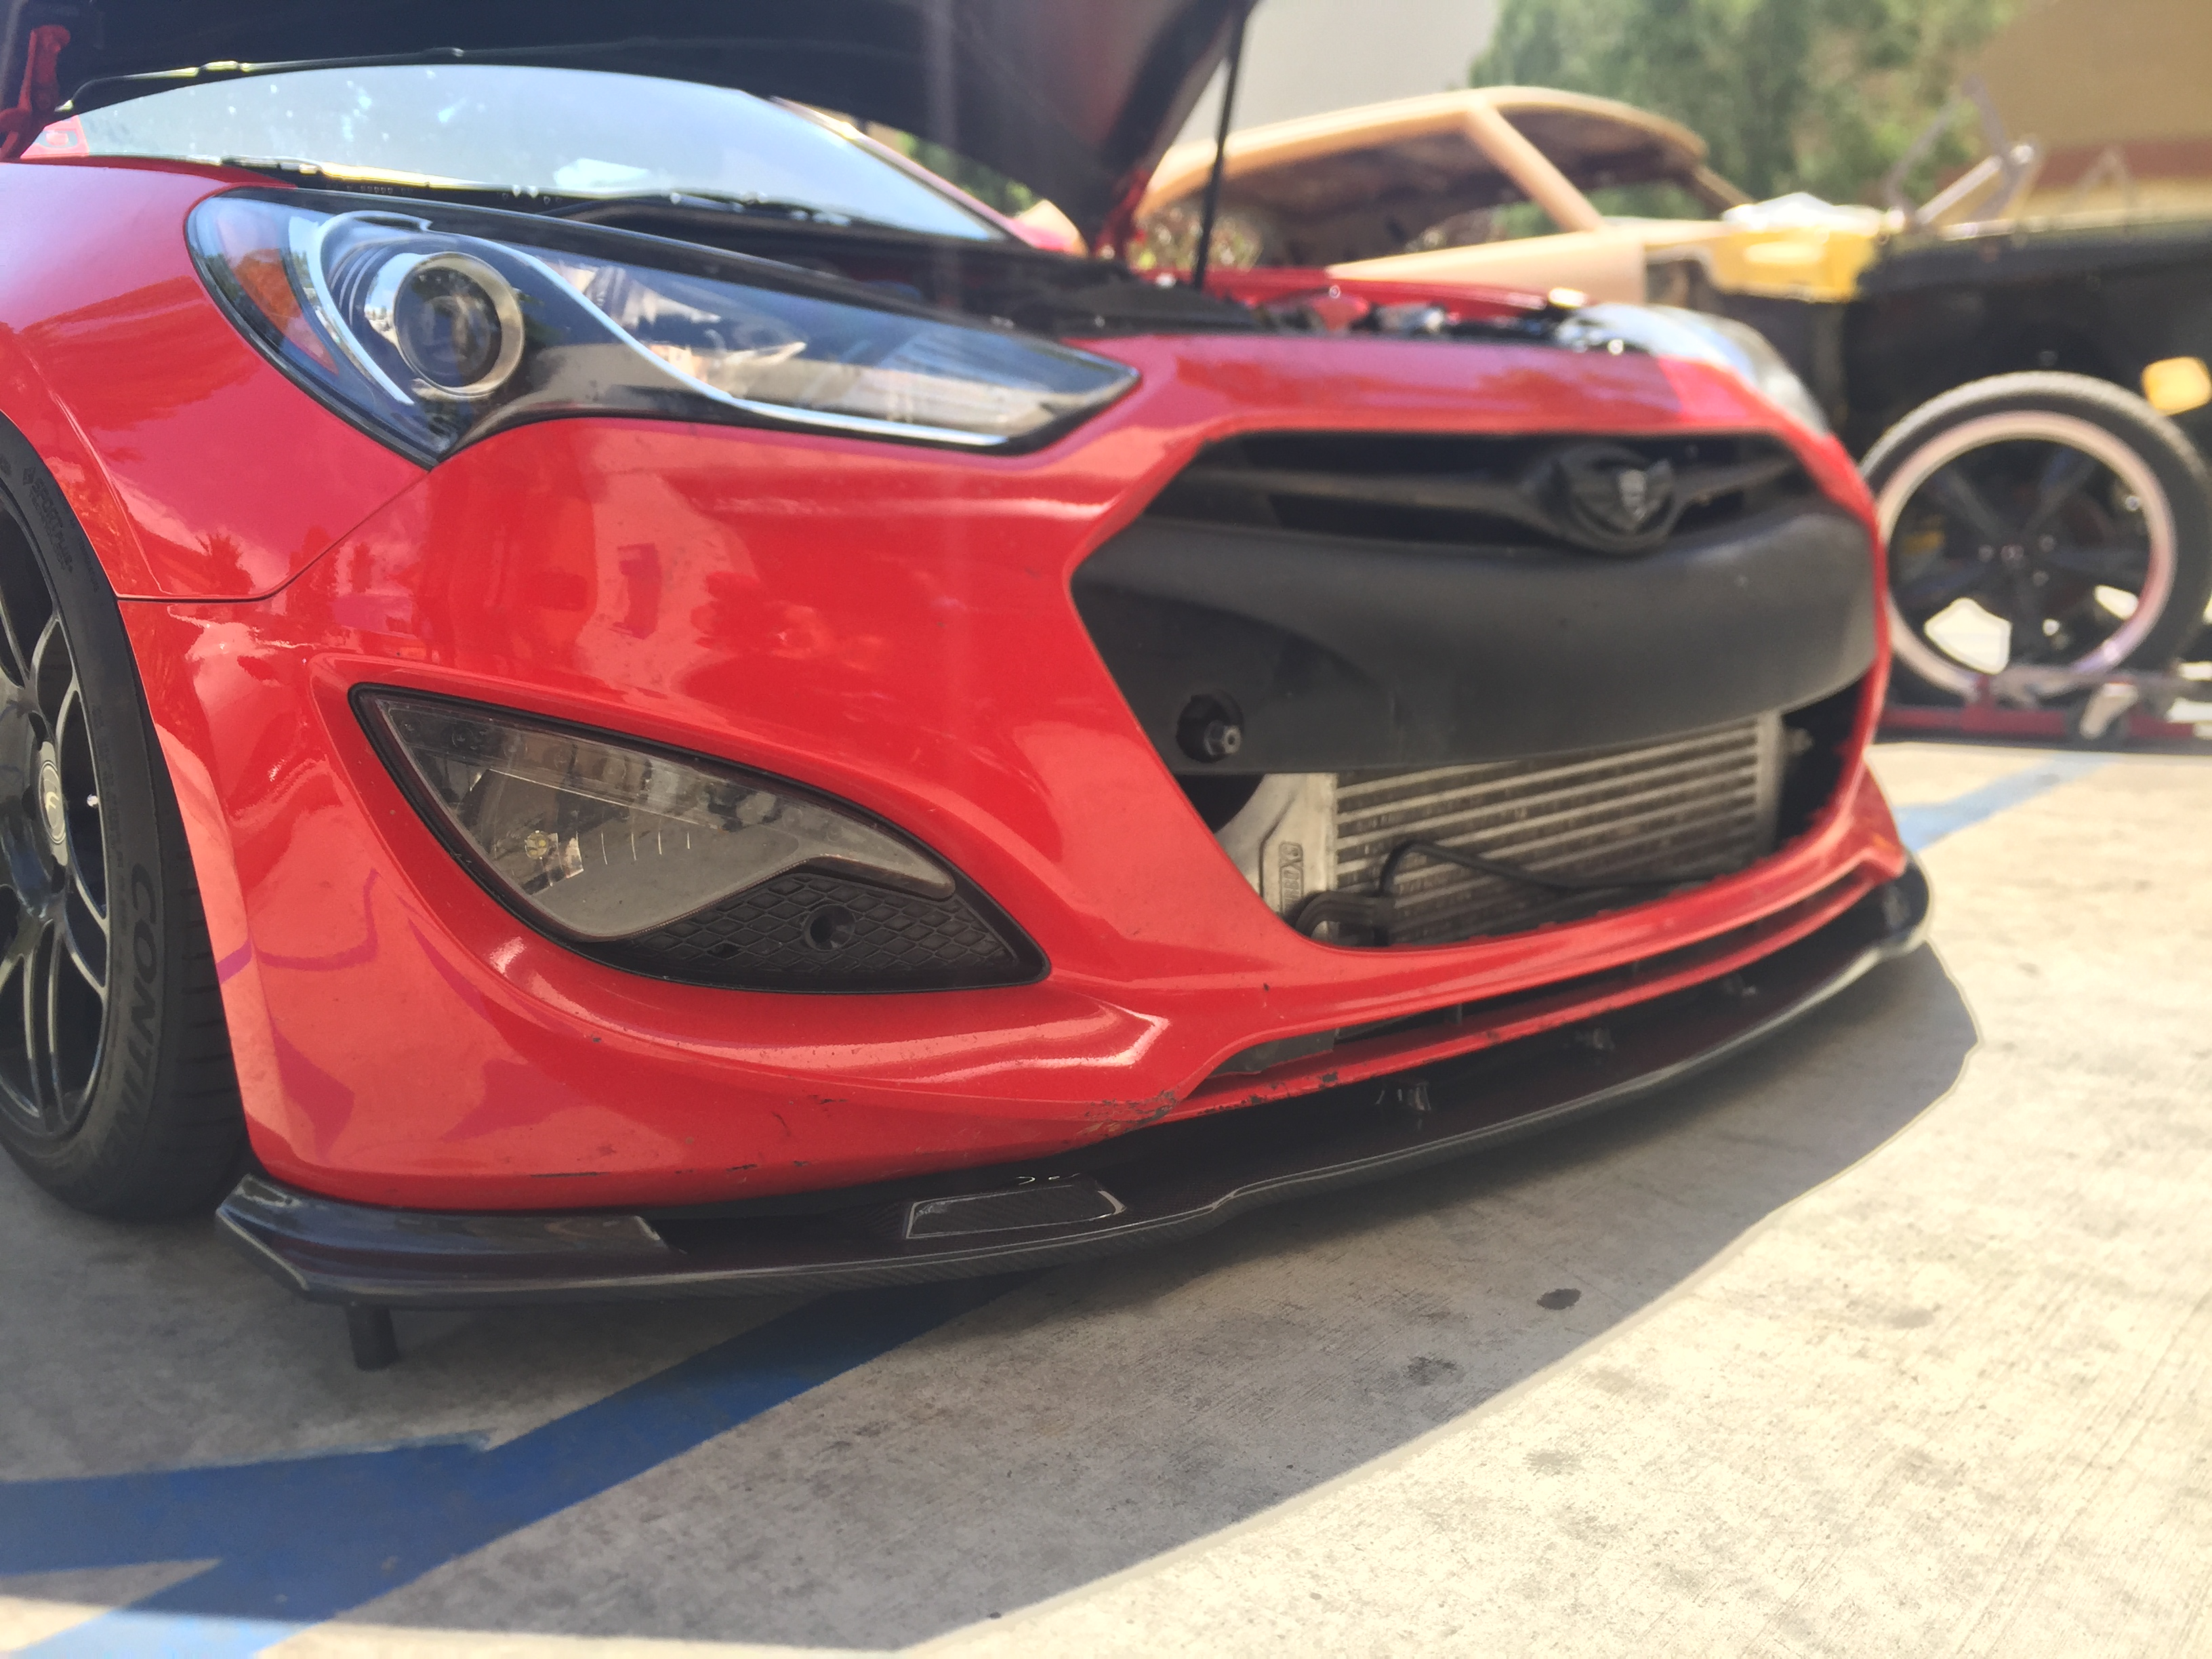 Home genesis coupe exterior lip kits myride carbon fiber front lip 2013 2016 genesis coupe